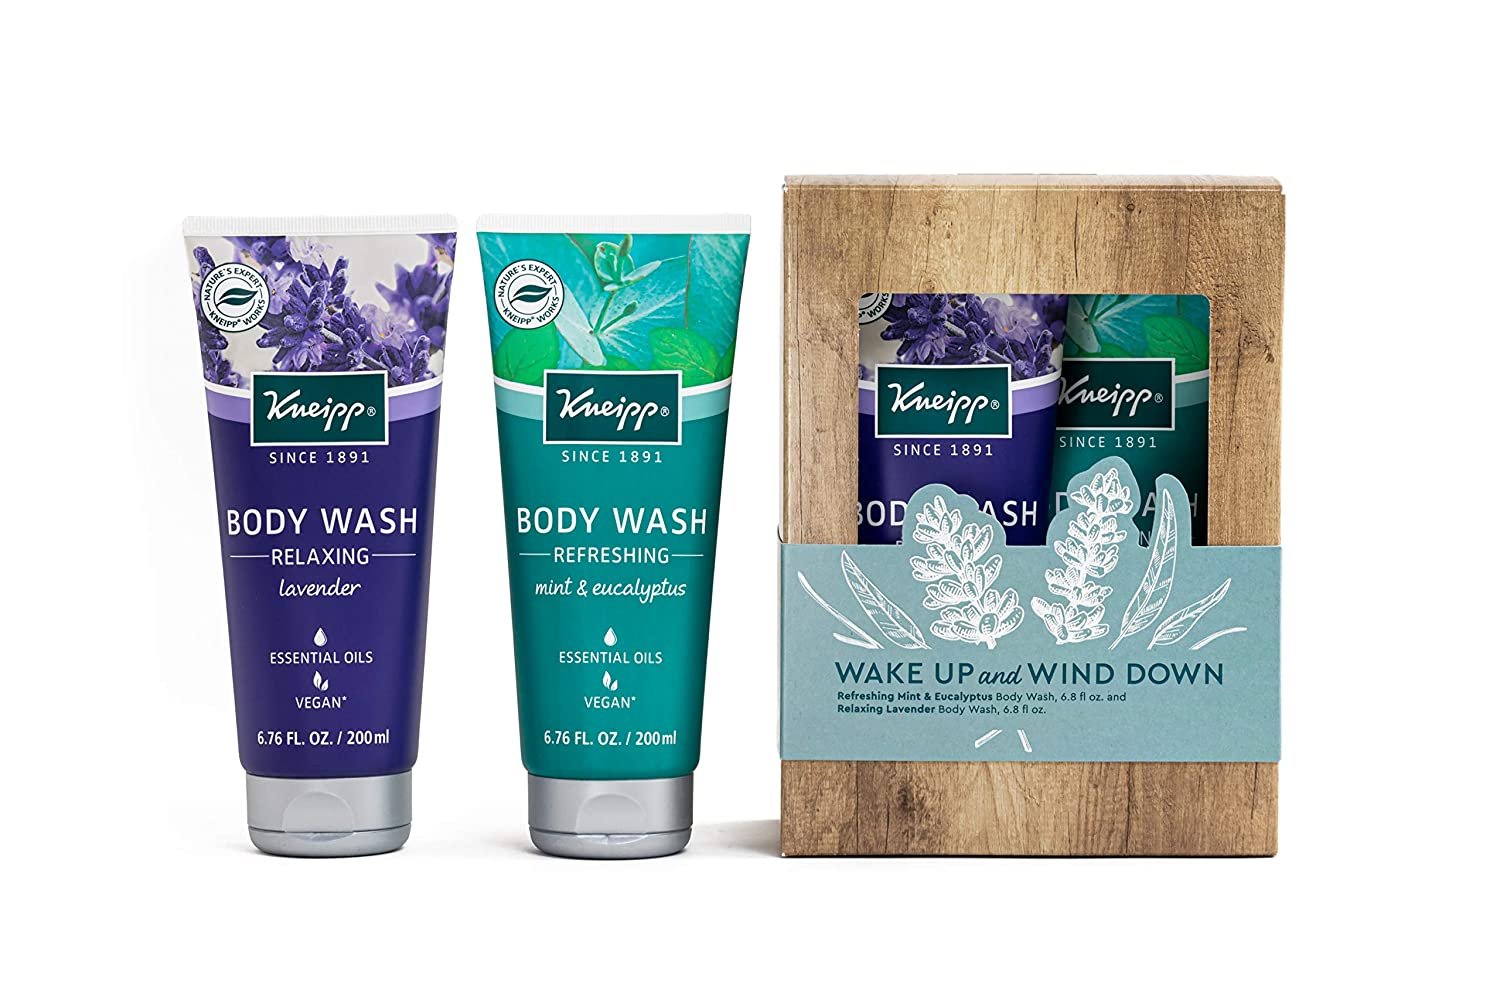 Kneipp Wake Up and Wind Down Lavender and Mint & Eucalyptus Body Wash Set